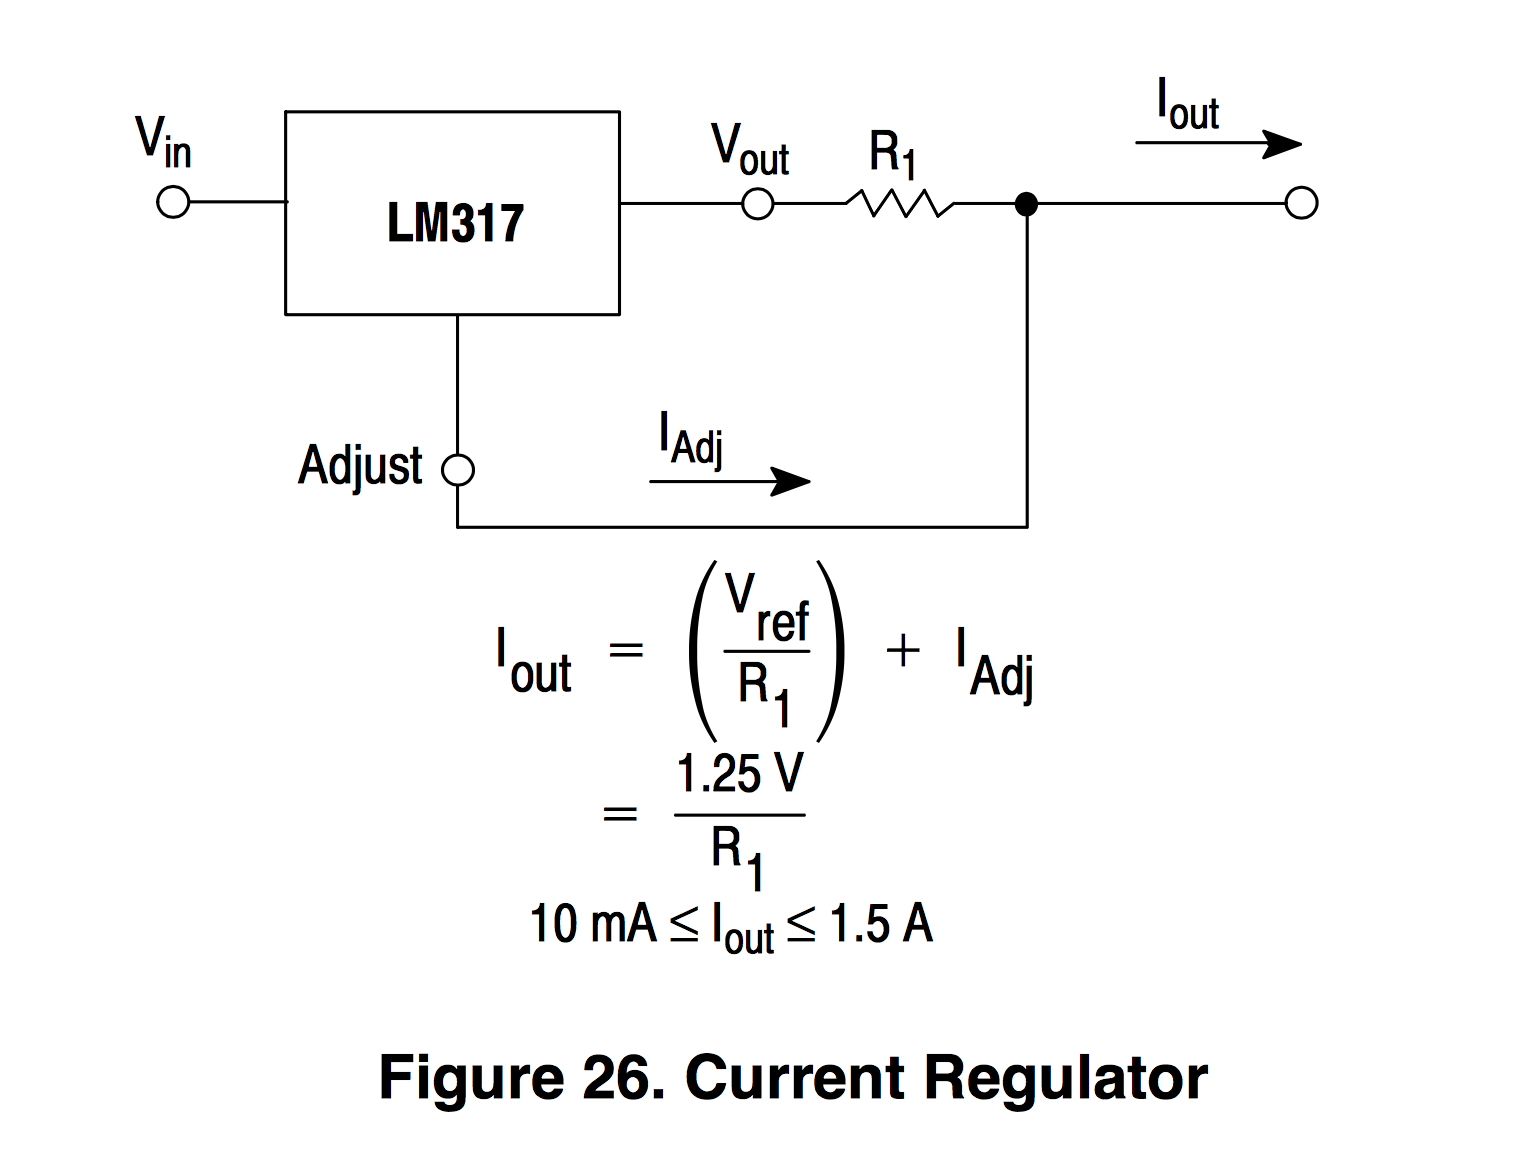 Voltage Regulators Revisted Lm317m 7812 Mcp170x Mic5219 And Icl7660 First I Connected 1 Supercap The Led Resistor Into Circuit This Current Regulator Is Even Simpler Than Using Lm317 As A Which Requires Two Resistors To Create Divider